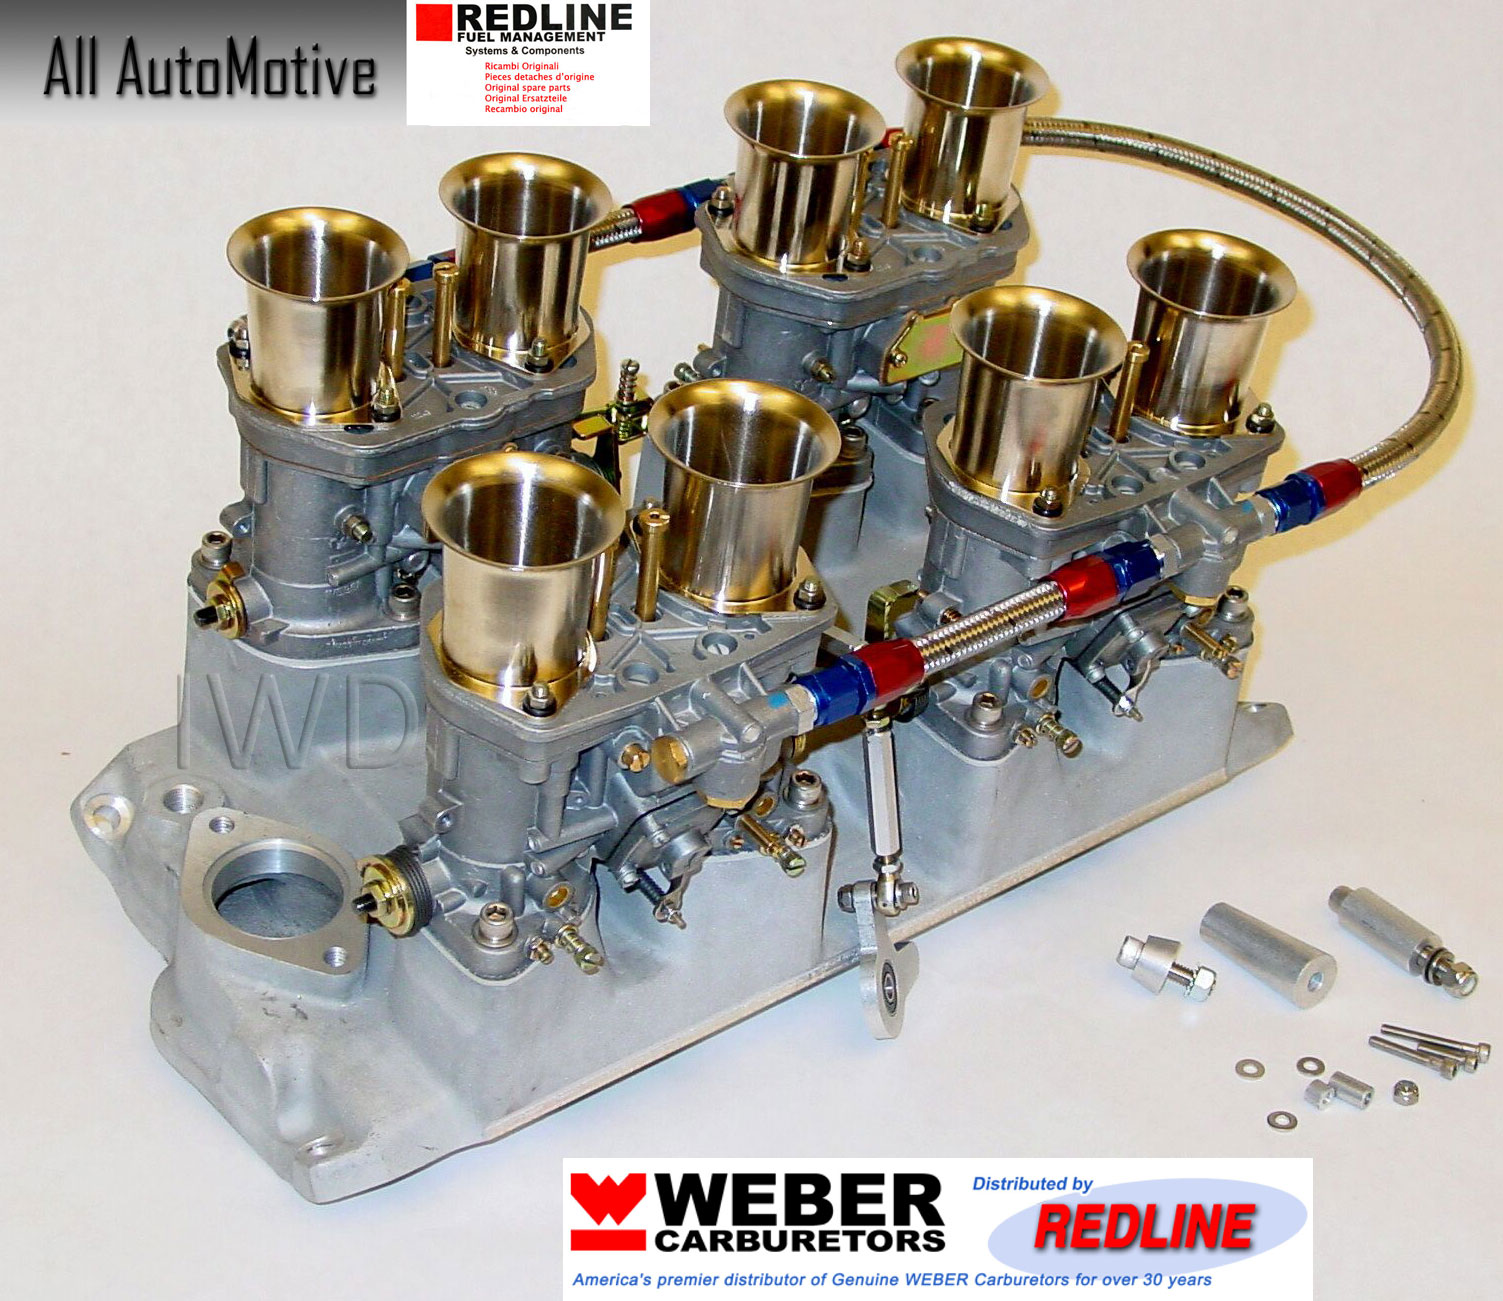 Details about Small Block Chevy 283 327 350 Weber kit w/intake, linkage &  genuine 44IDF webers